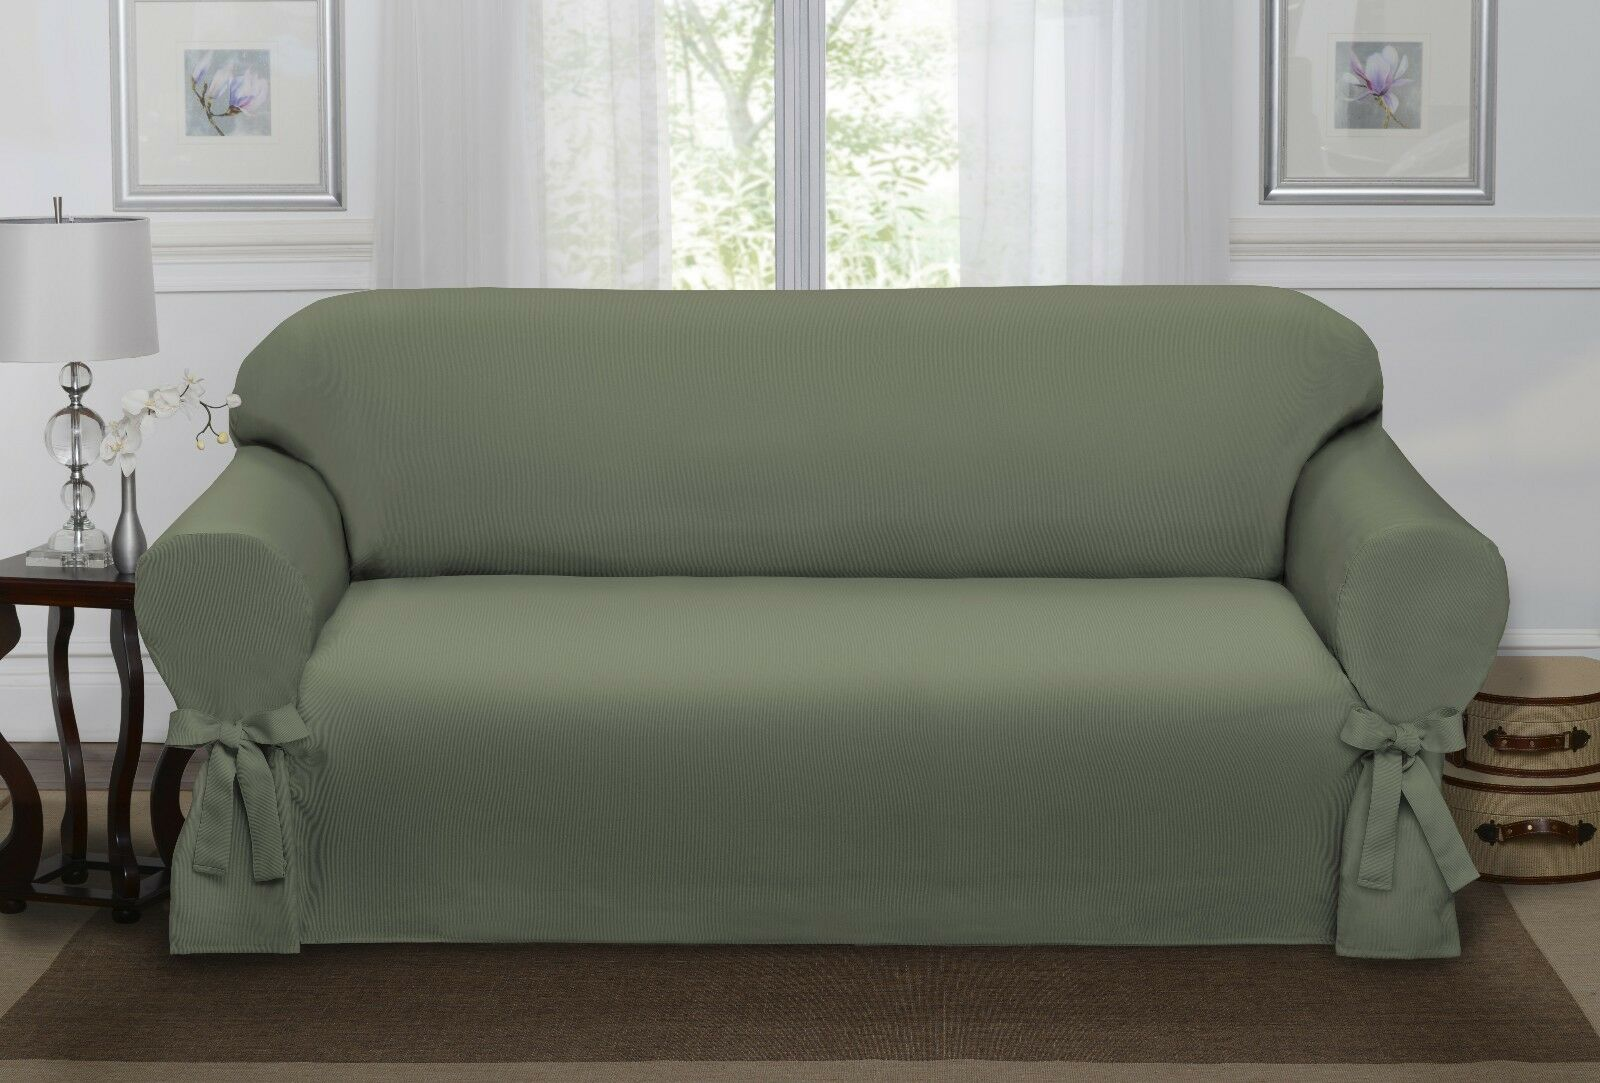 sage green loden lucerne sofa slipcover couch cover sofa